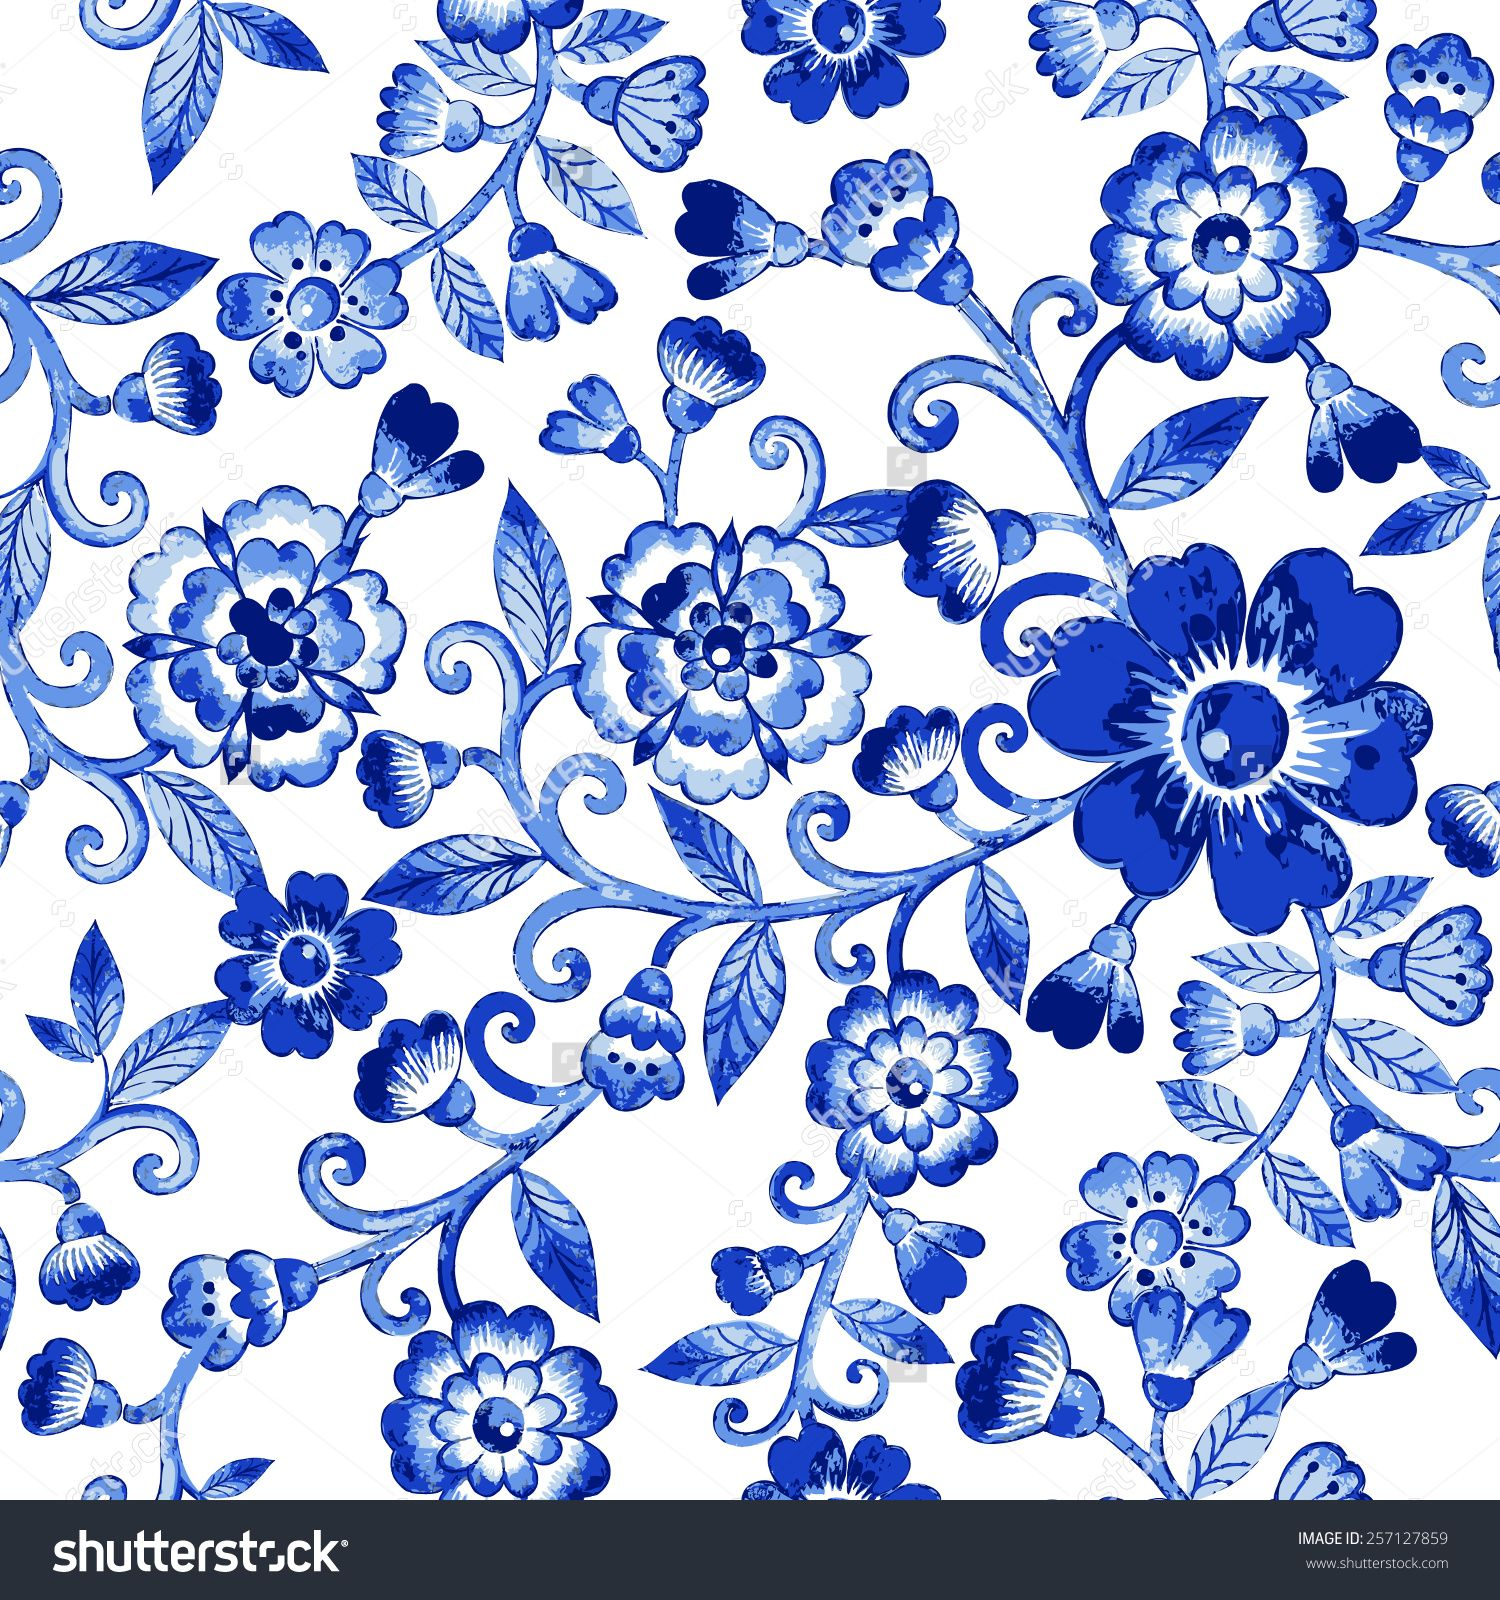 Vector Floral Watercolor Texture Pattern With Blue Flowers